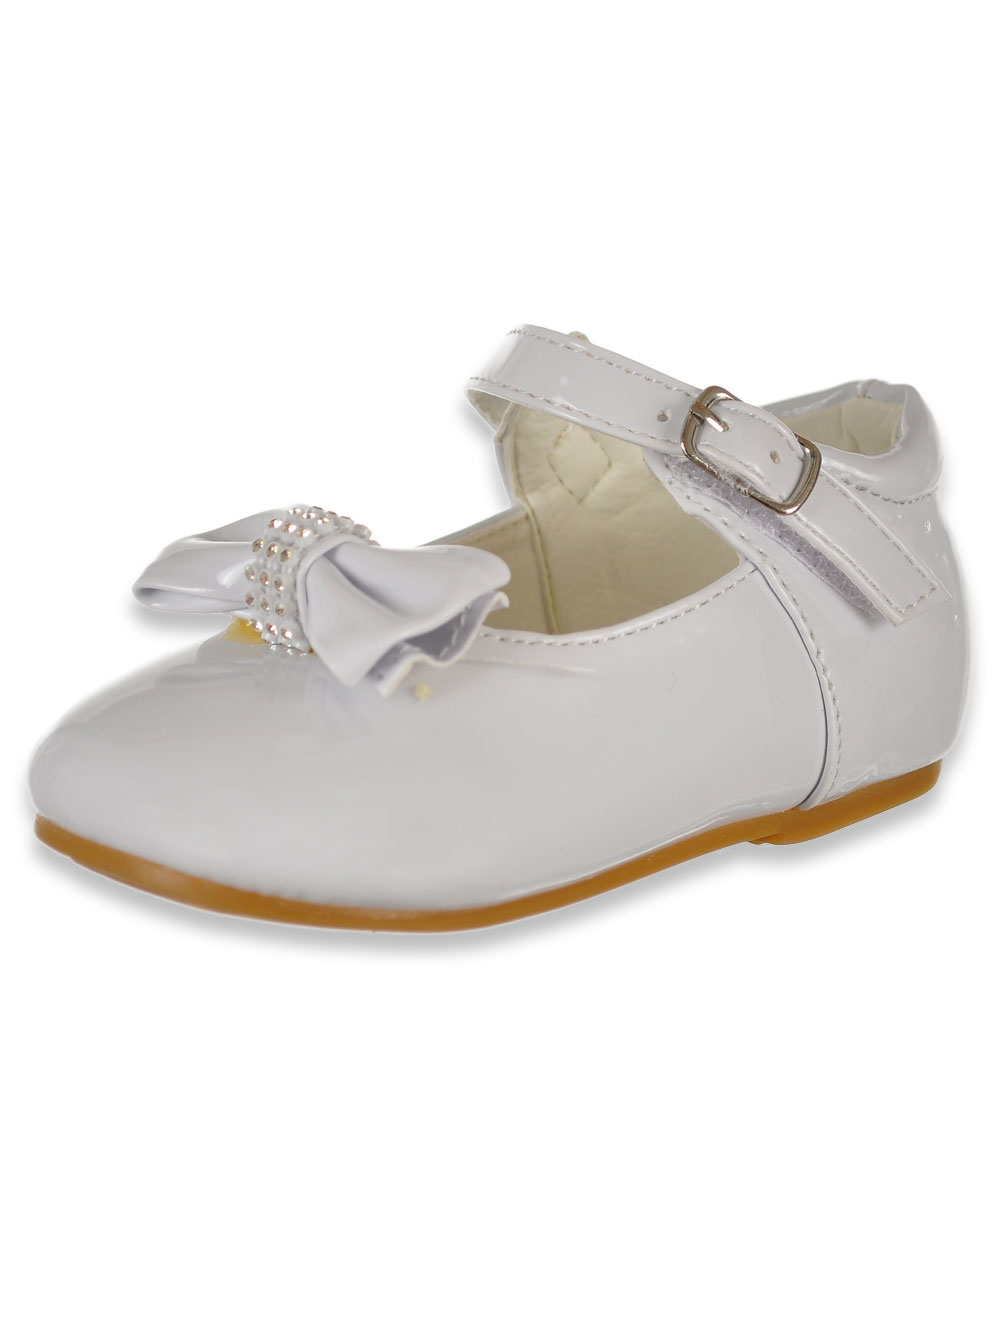 Sizes 6-12 Angels Girls/' Floating Petal Mary Jane School Shoes